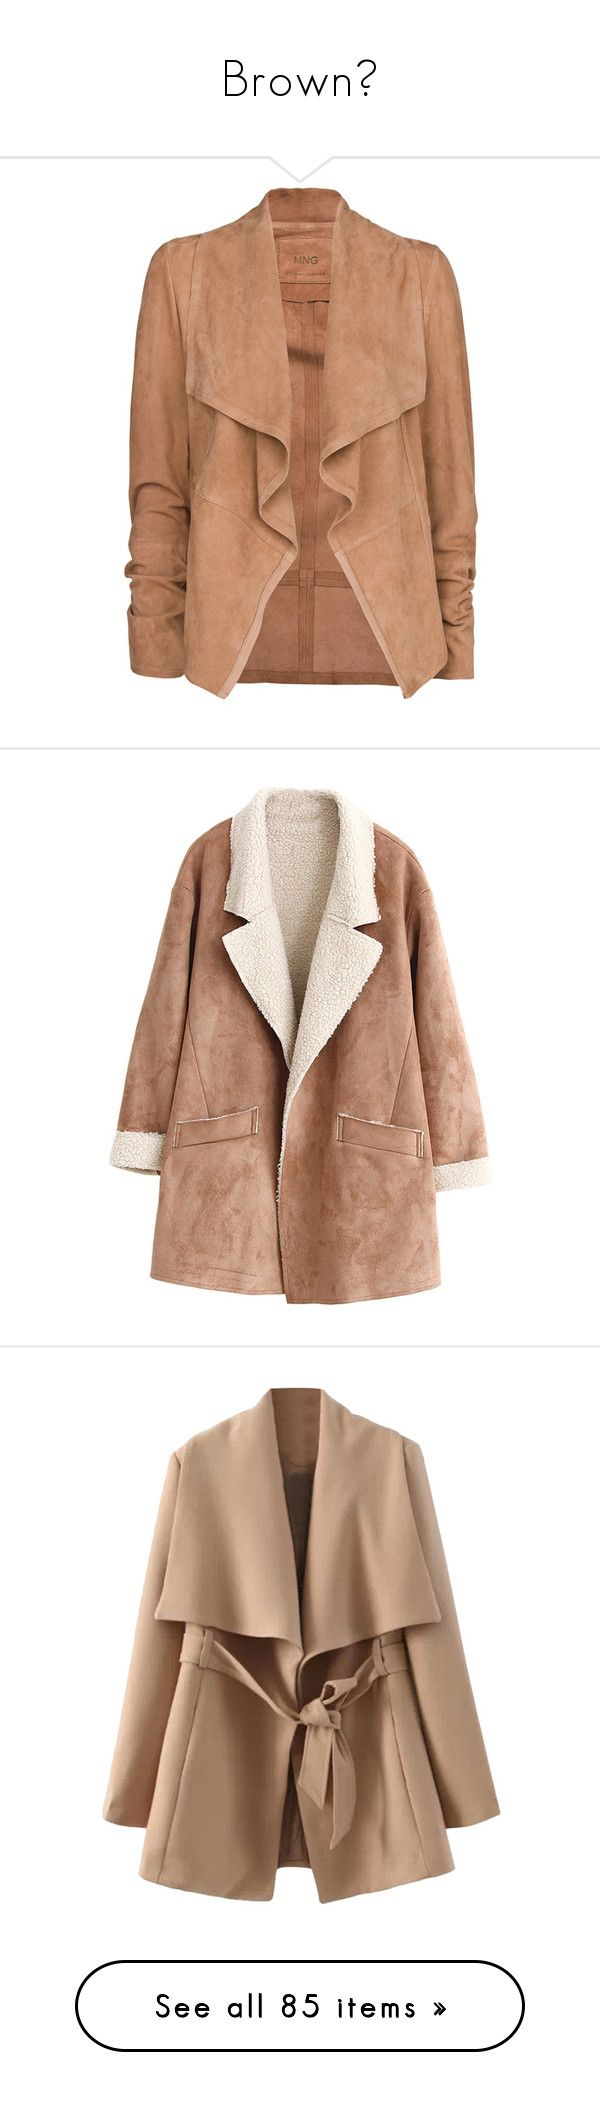 """Brown🌰"" by nattiexo ❤ liked on Polyvore featuring outerwear, jackets, coats, casacos, beige, beige jacket, beige suede jacket, long sleeve jacket, lapel jacket and mango jackets"